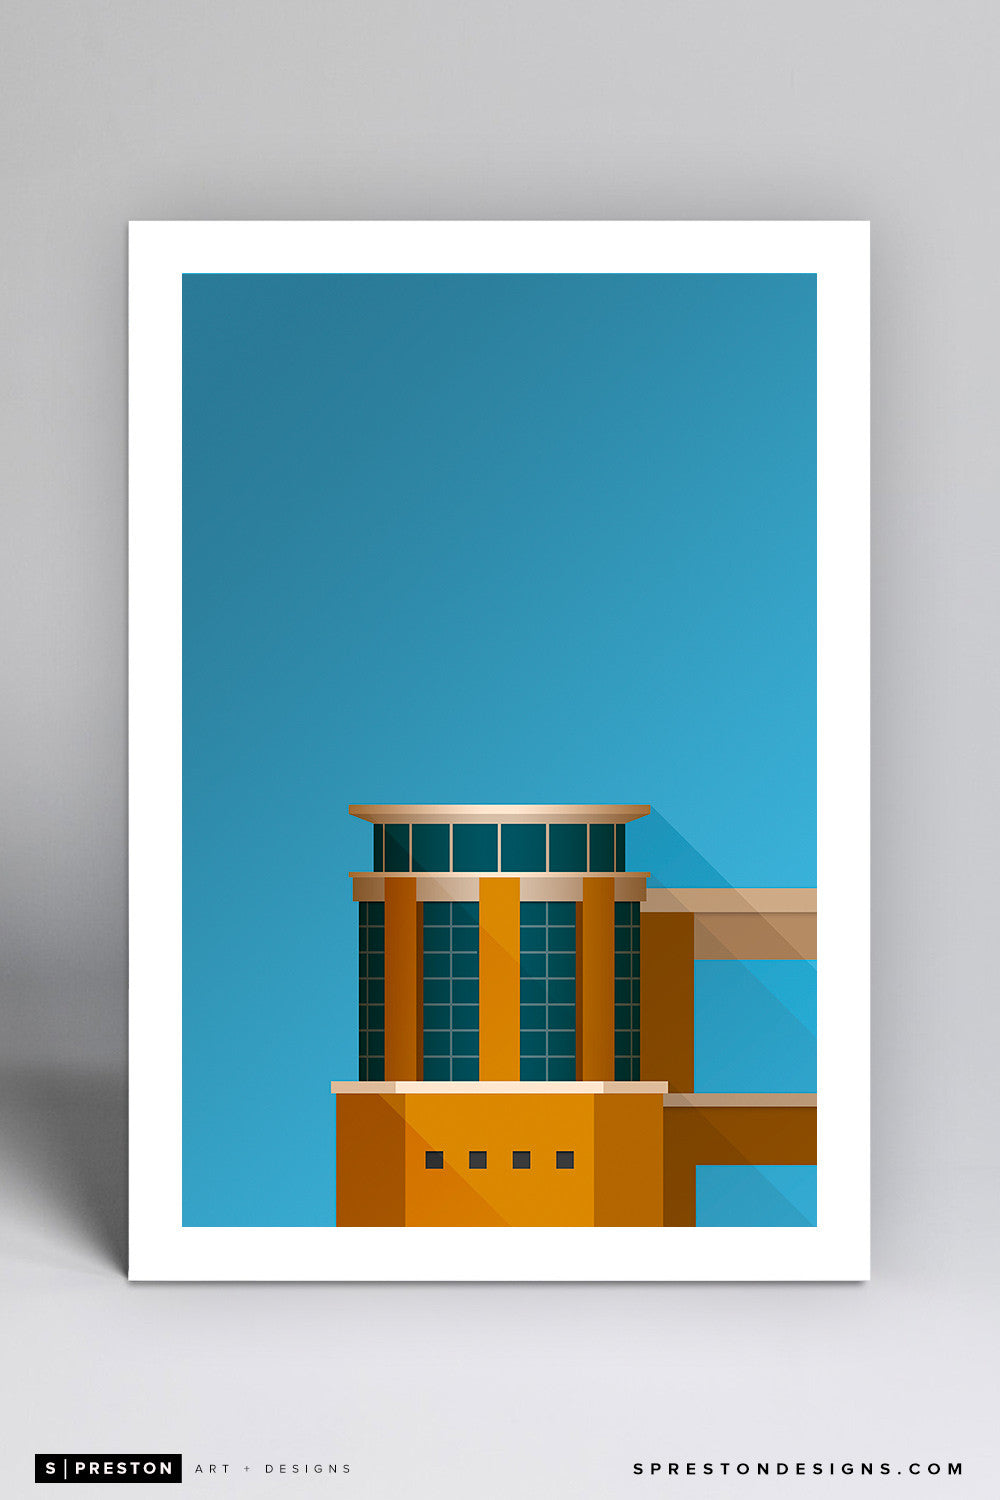 Minimalist Darrell K Royal–Texas Memorial Stadium Art Print - University of Texas - S. Preston Art + Designs